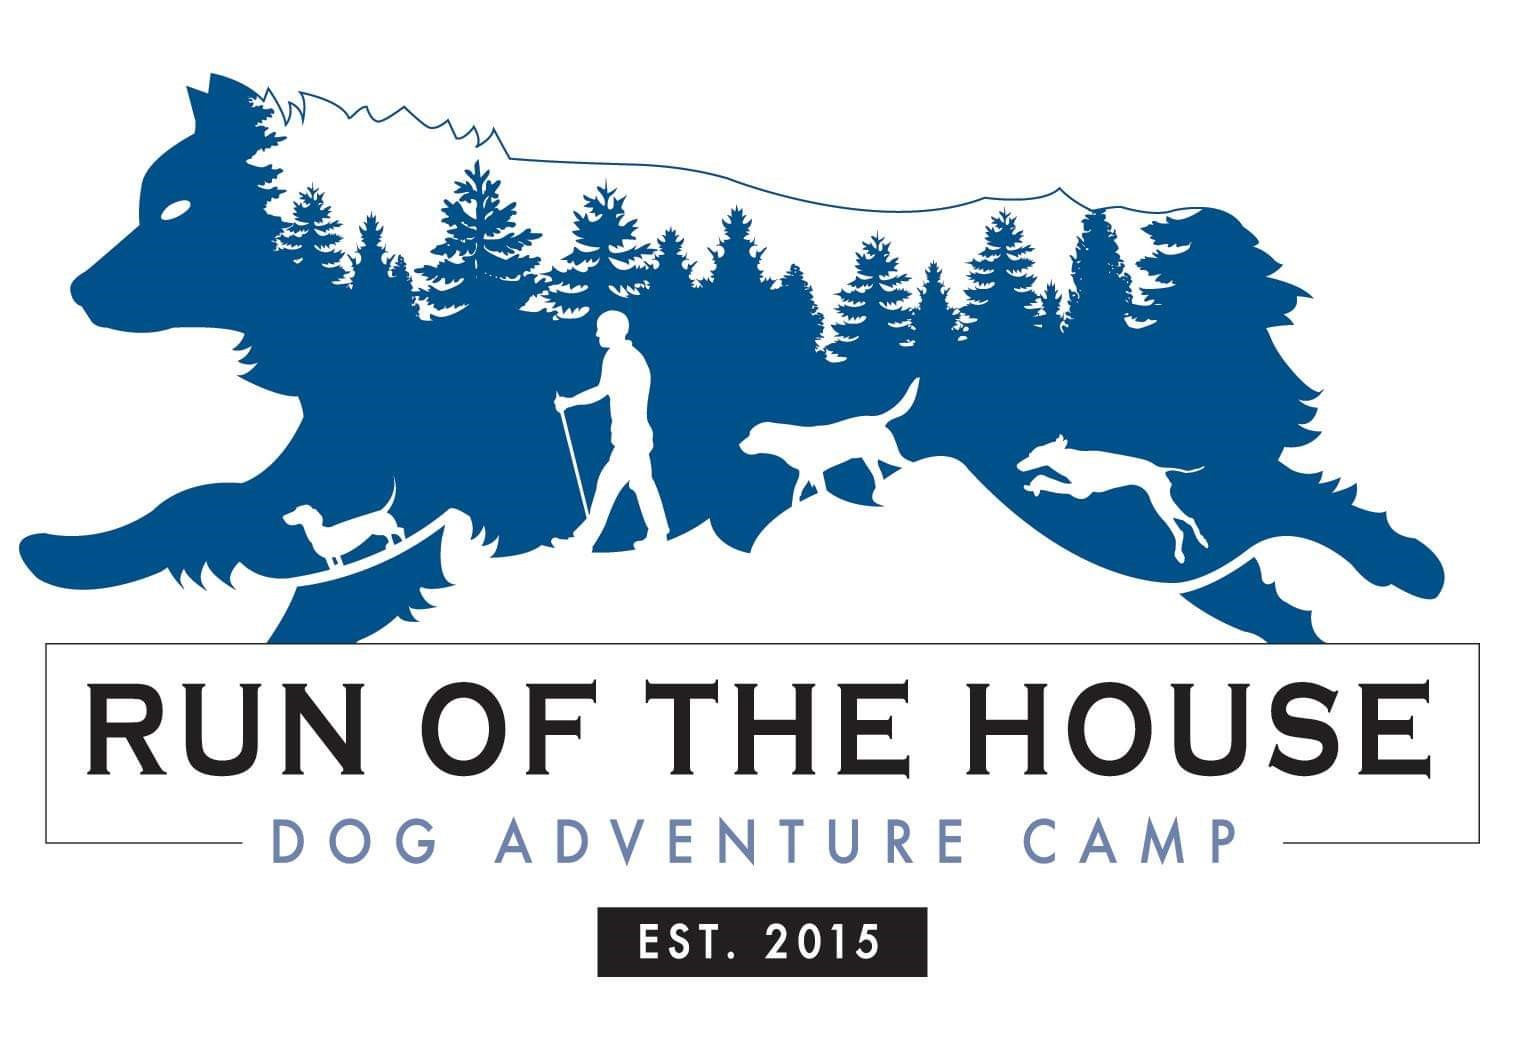 Logo image for Run of the House Dog Adventure Camp